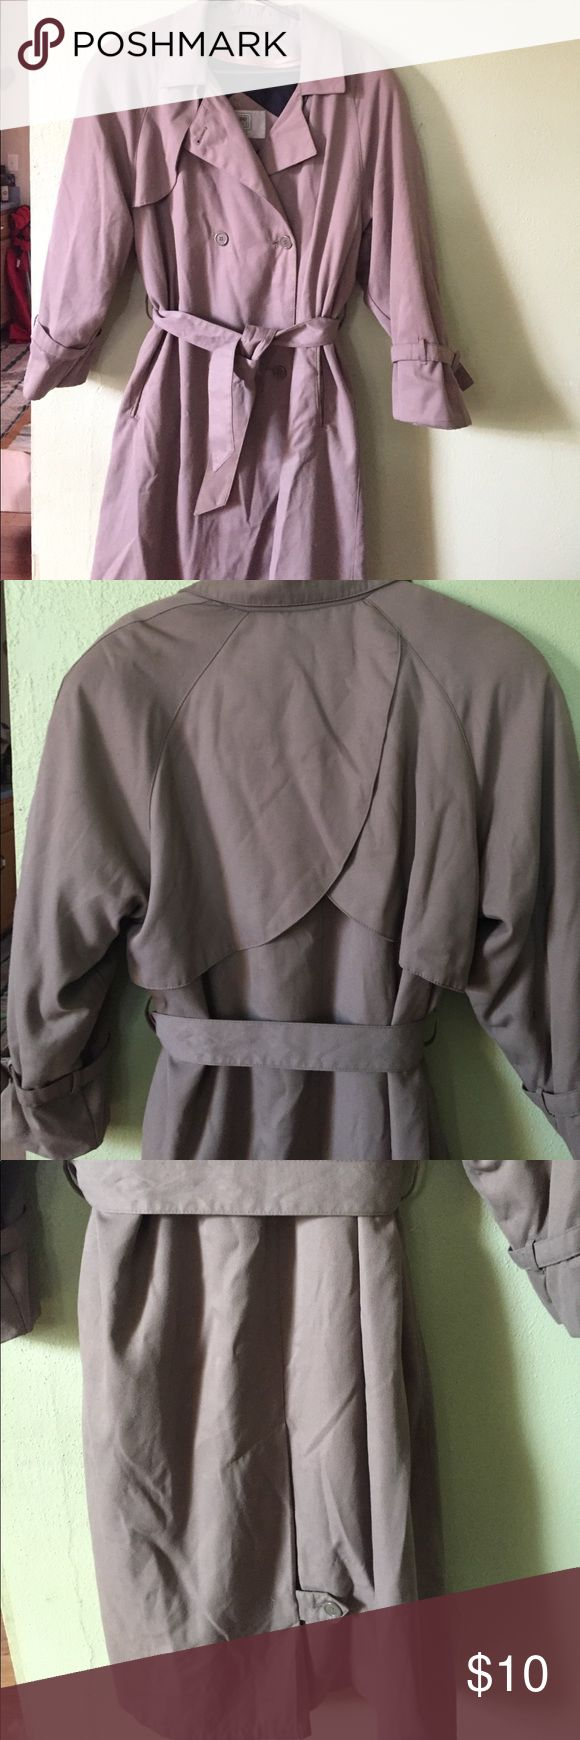 Women's trench coat Women's petite trench coat with zip out liner by Amanda Smith size 10, in good condition. Jackets & Coats Trench Coats